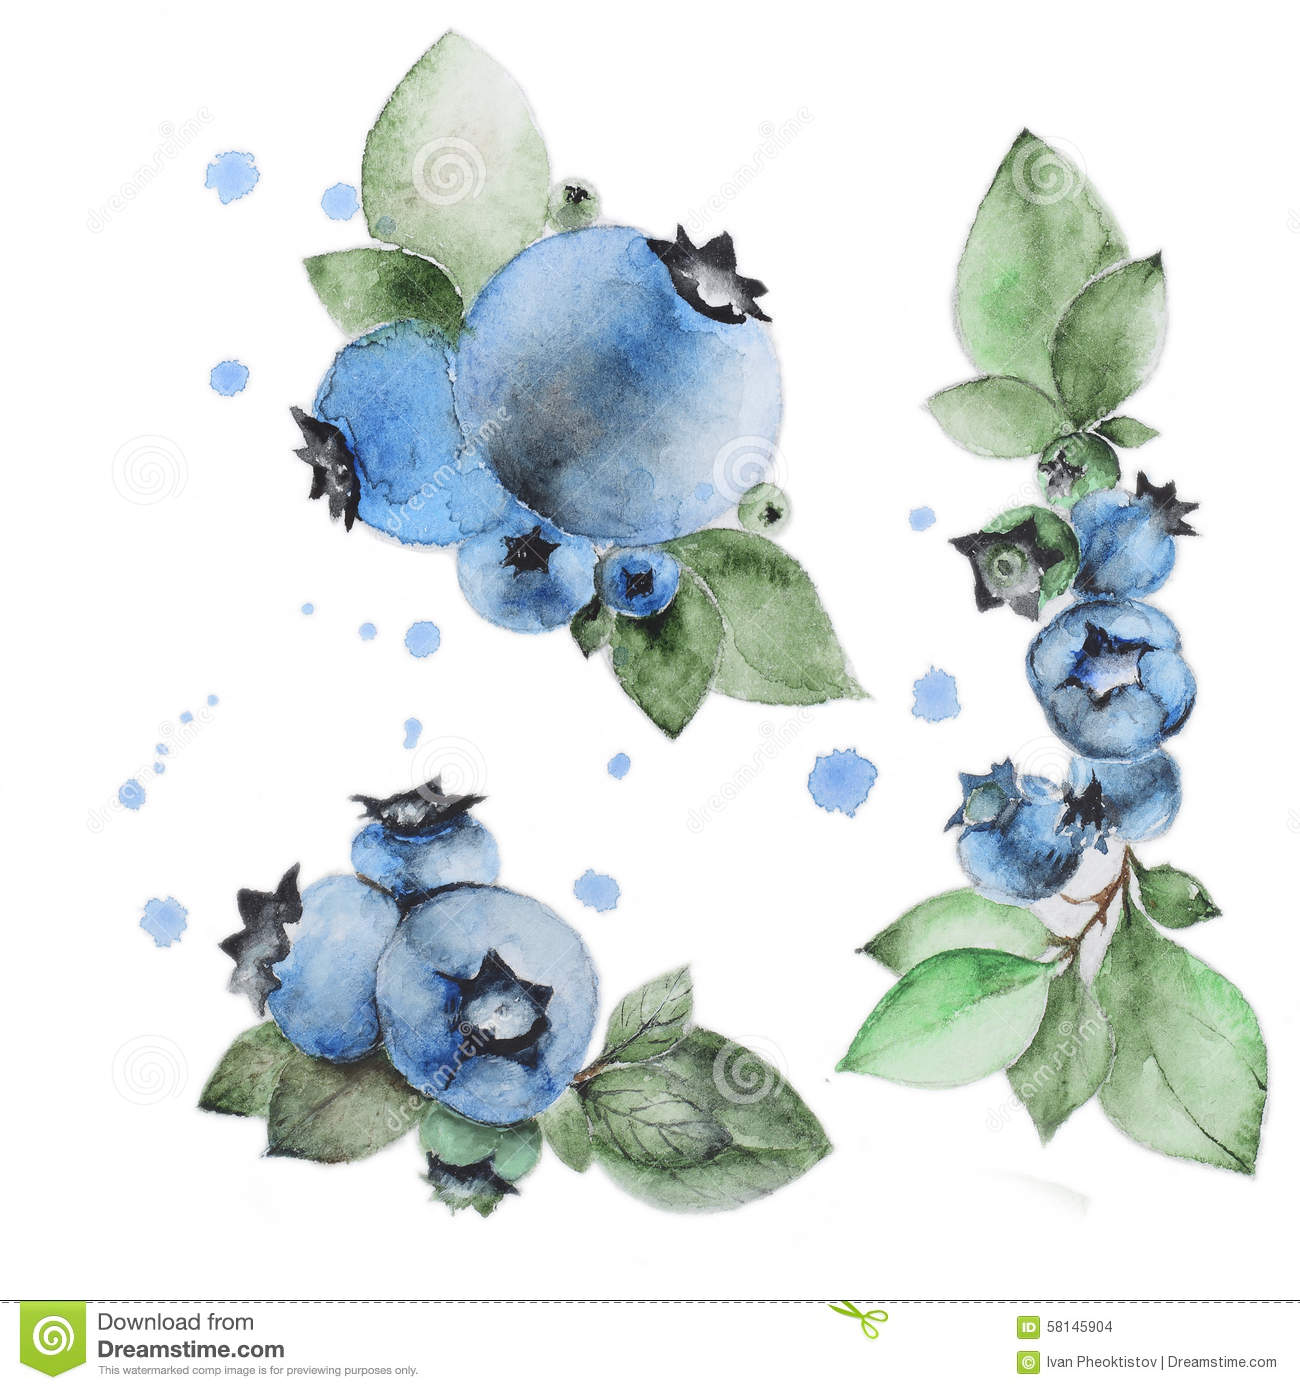 Watercolor Blueberry Stock Illustration - Image: 58145904